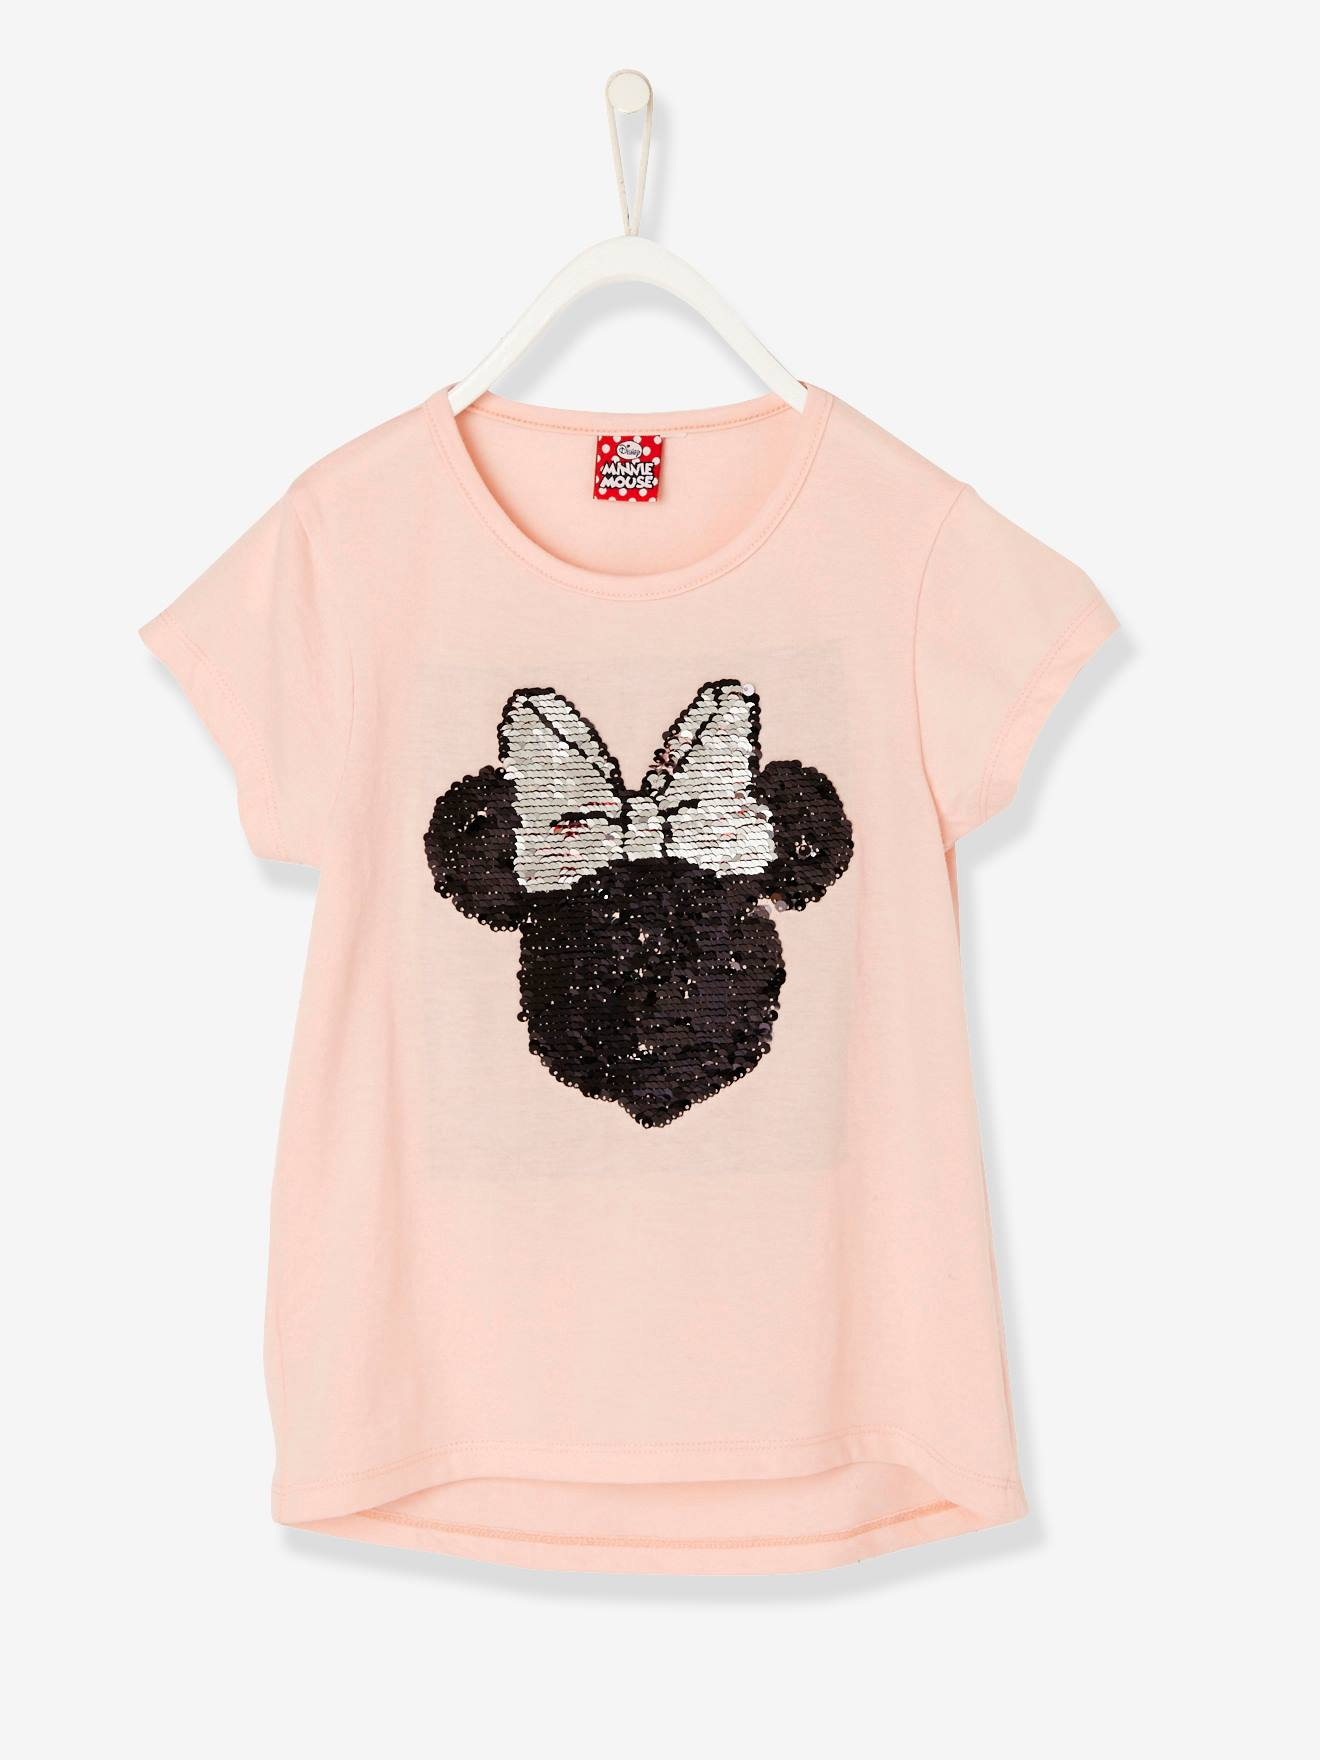 b18fdfbe82607 tee shirt fille sequins - www.goldpoint.be